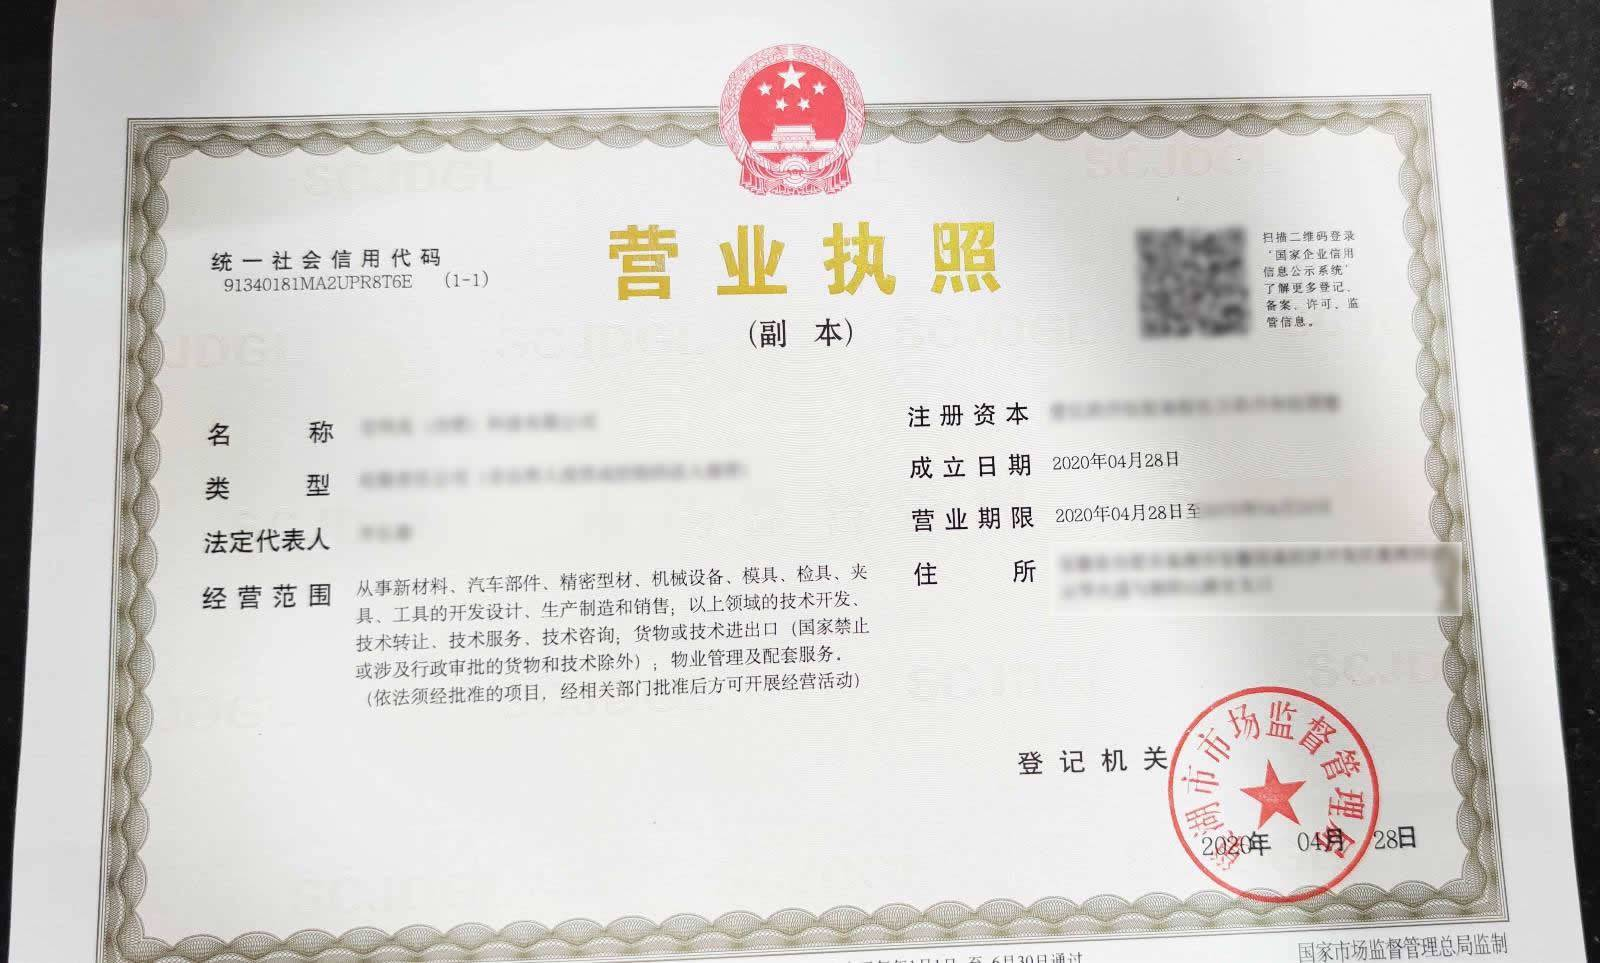 A business license of a wholly foreign owned enterprise (WFOE) in China